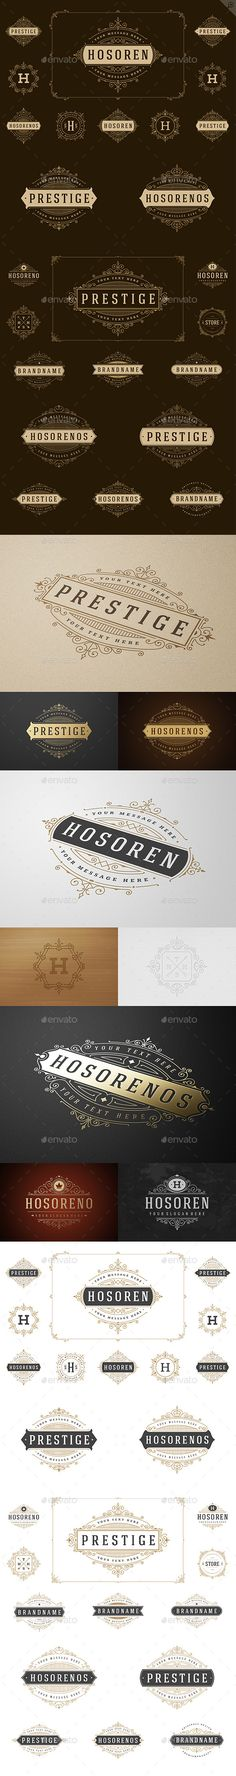 25 Ornaments Logotypes and Monograms #design Download: http://graphicriver.net/item/25-ornaments-logotypes-and-monograms-/12169970?ref=ksioks